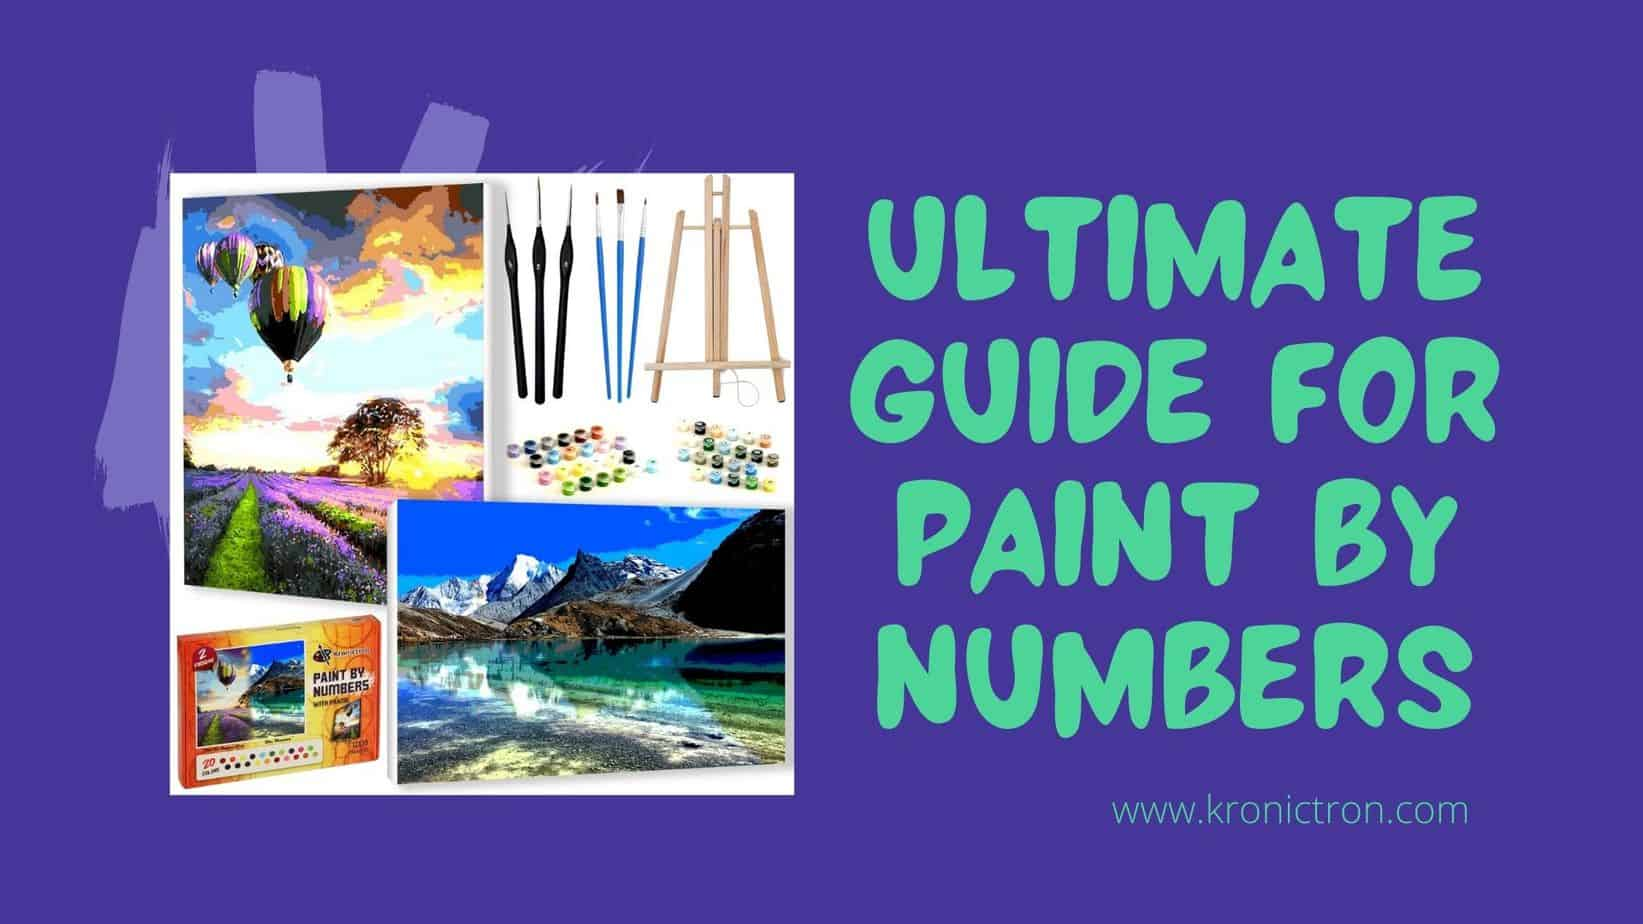 Ultimate Guide for Paint by Numbers